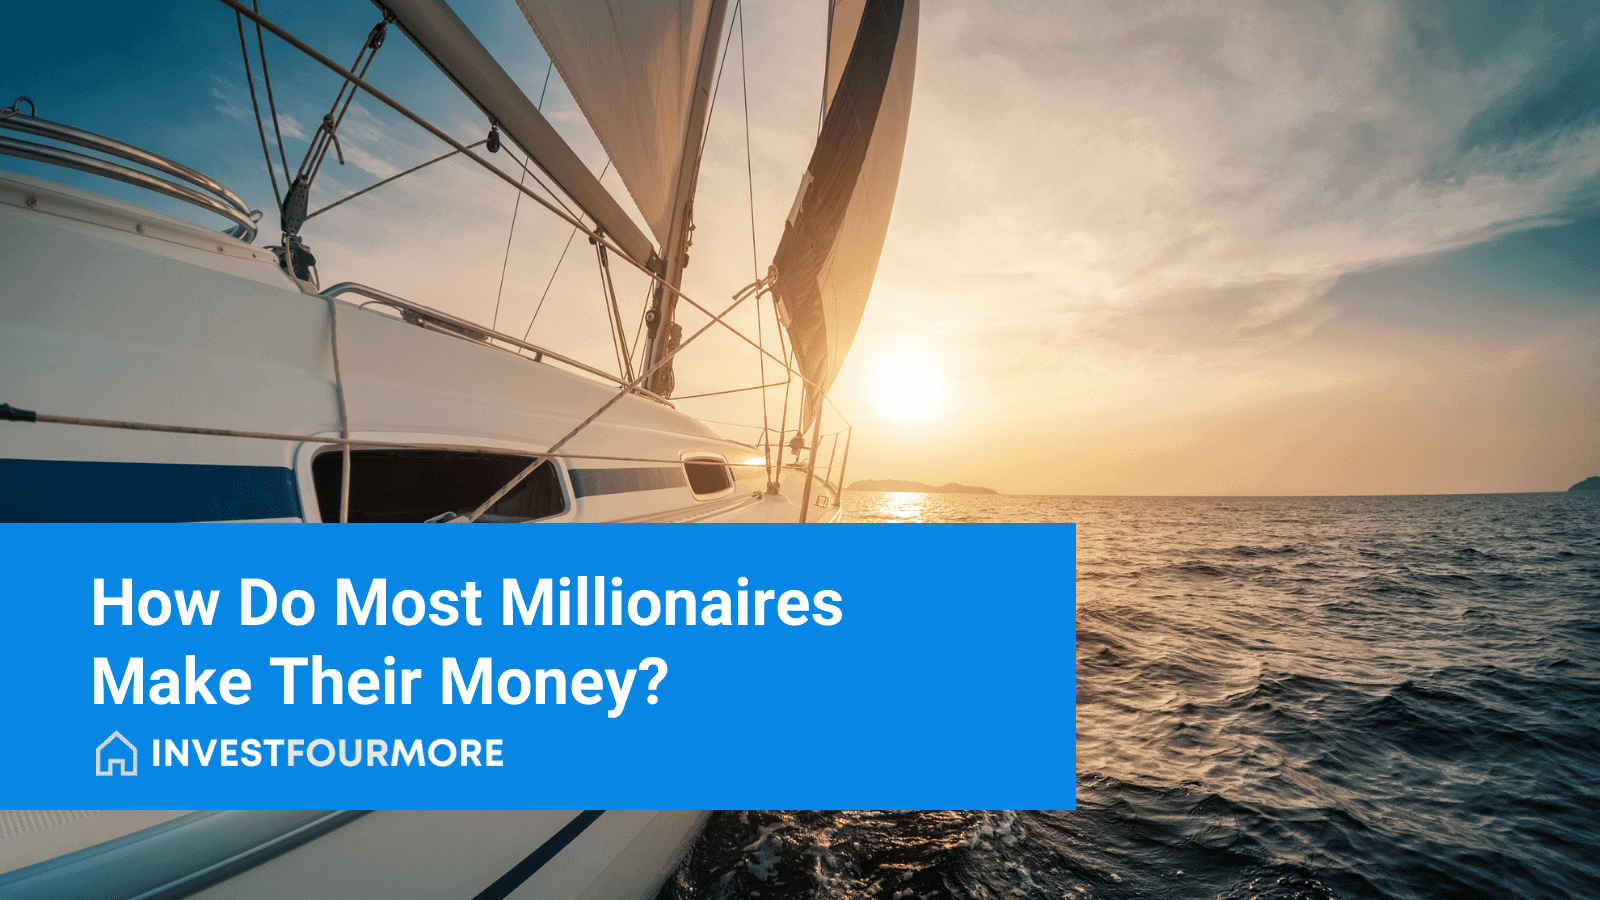 How Do Most Millionaires Make Their Money